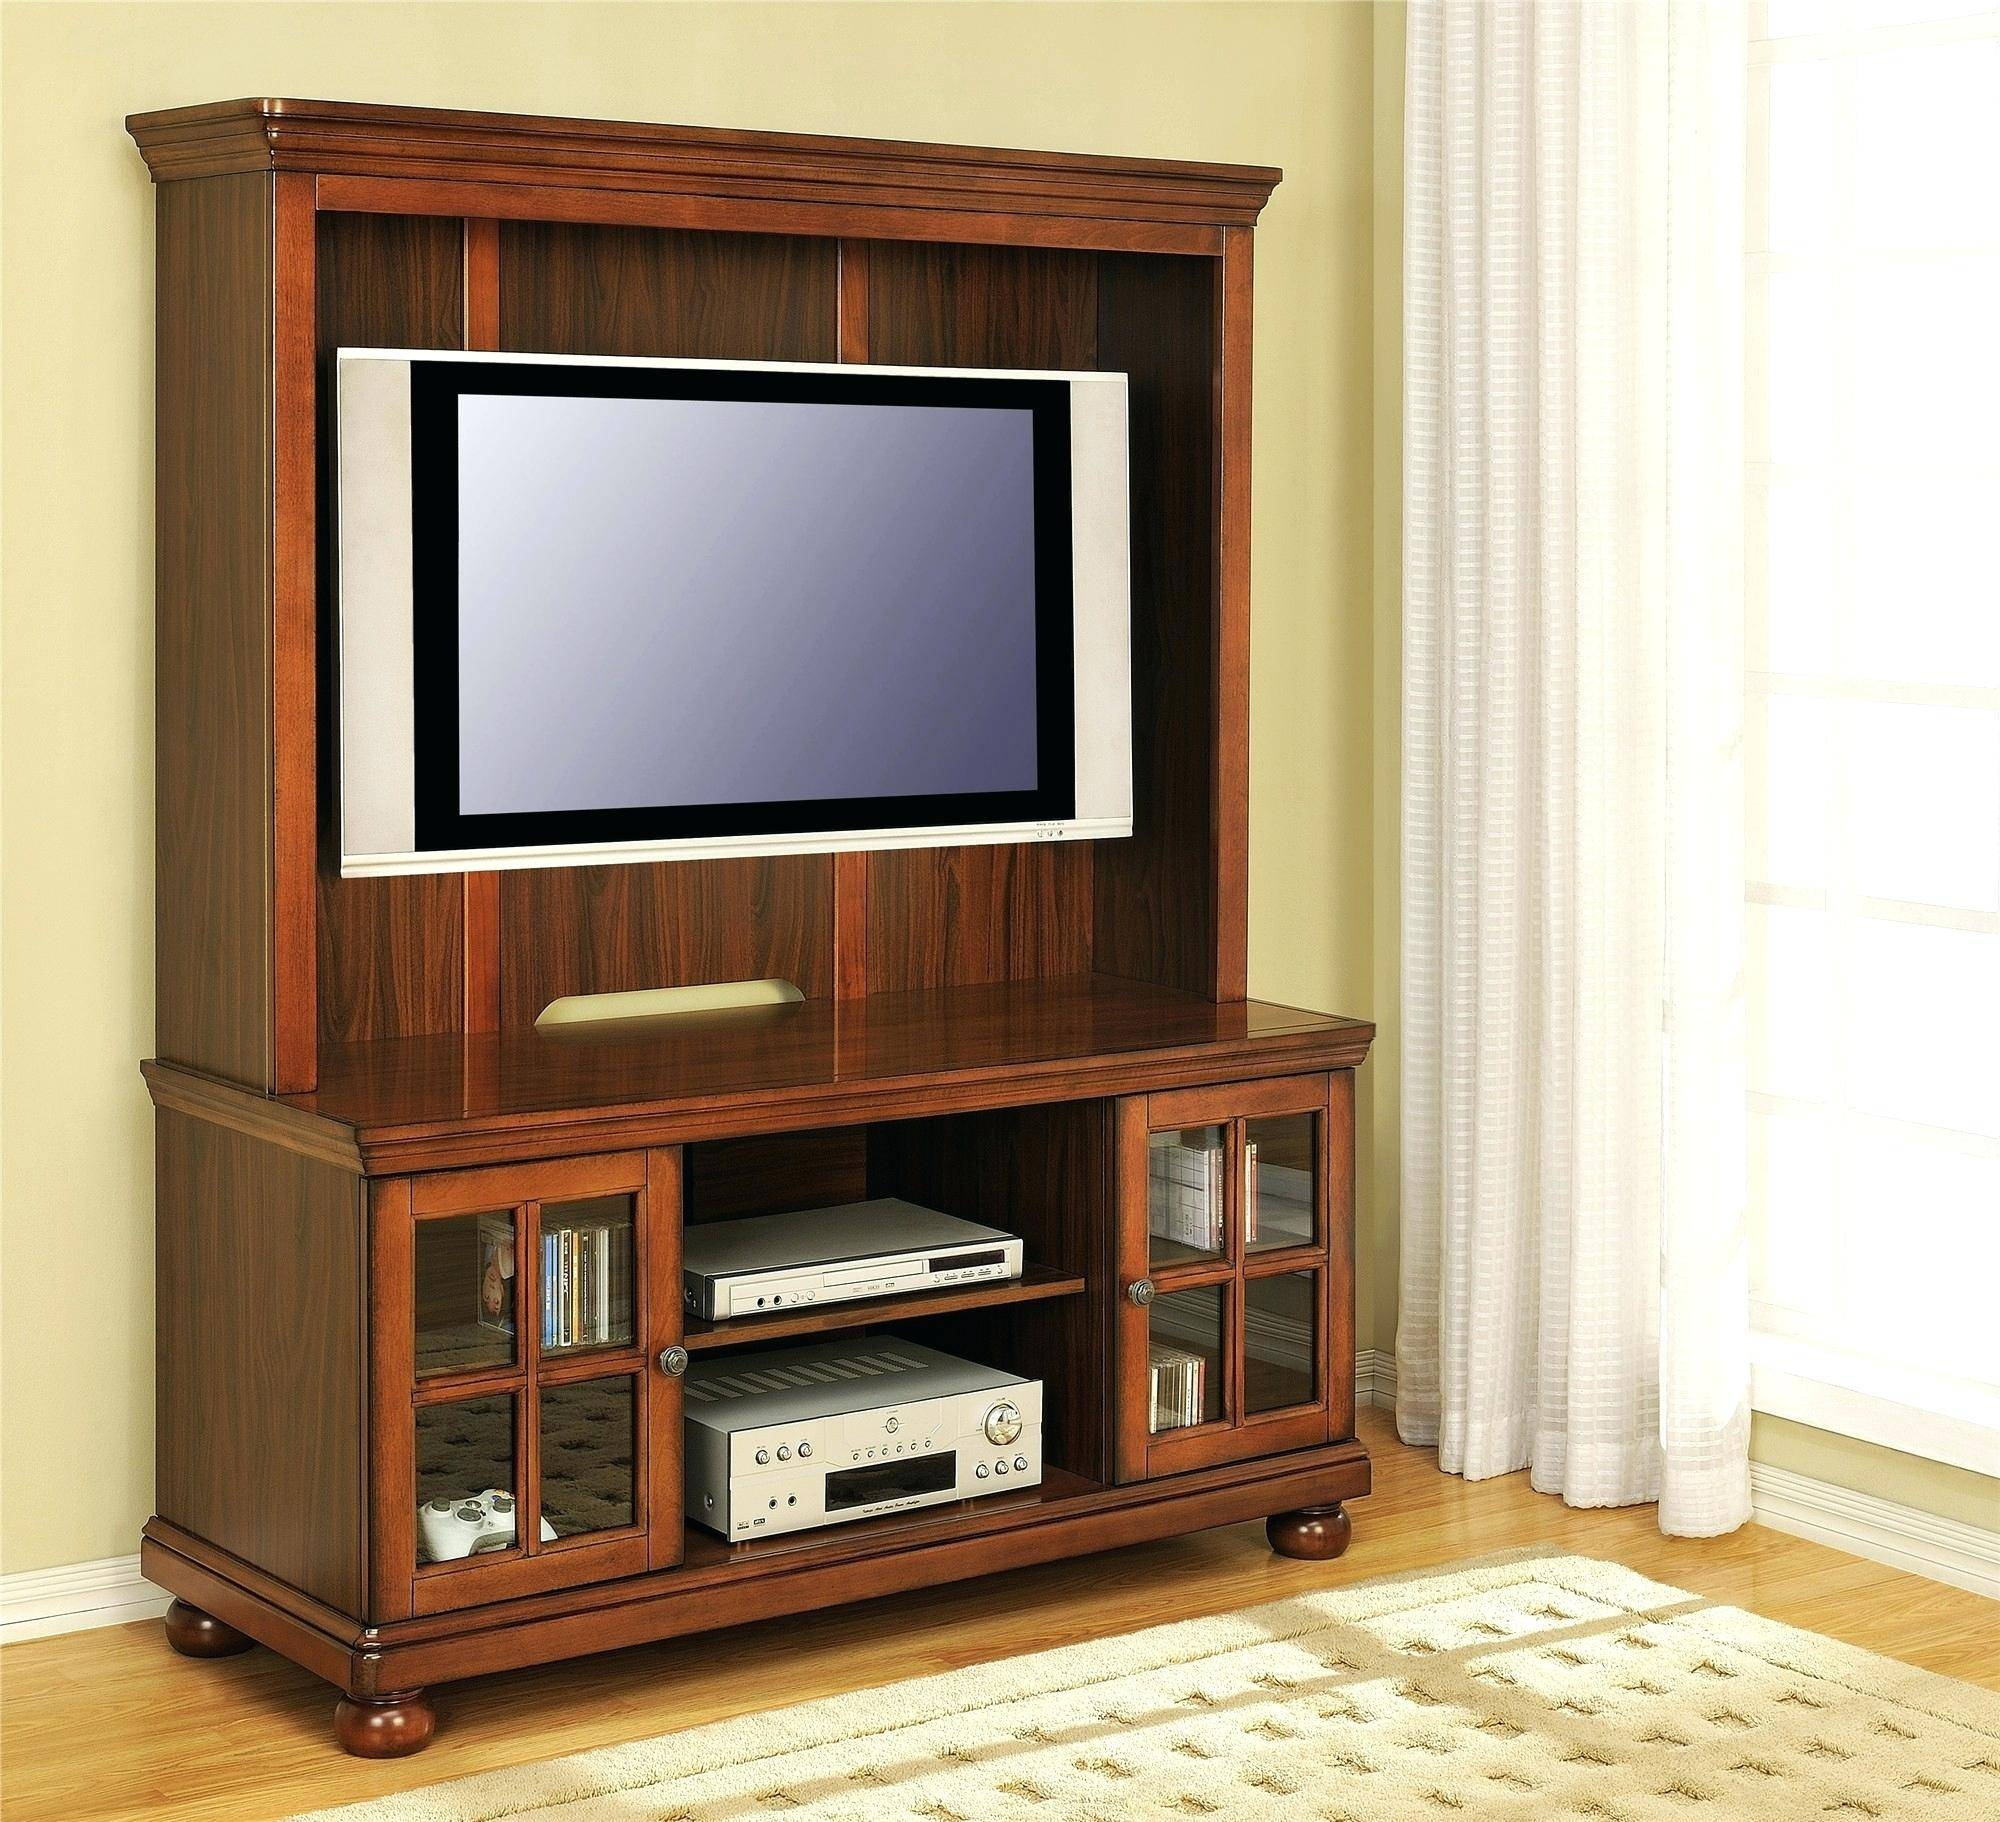 Tv Stand : Tv Stand Ideas Awesome Like This Itemrustic Dark Oak Tv Within Oak Tv Cabinets For Flat Screens With Doors (View 14 of 15)